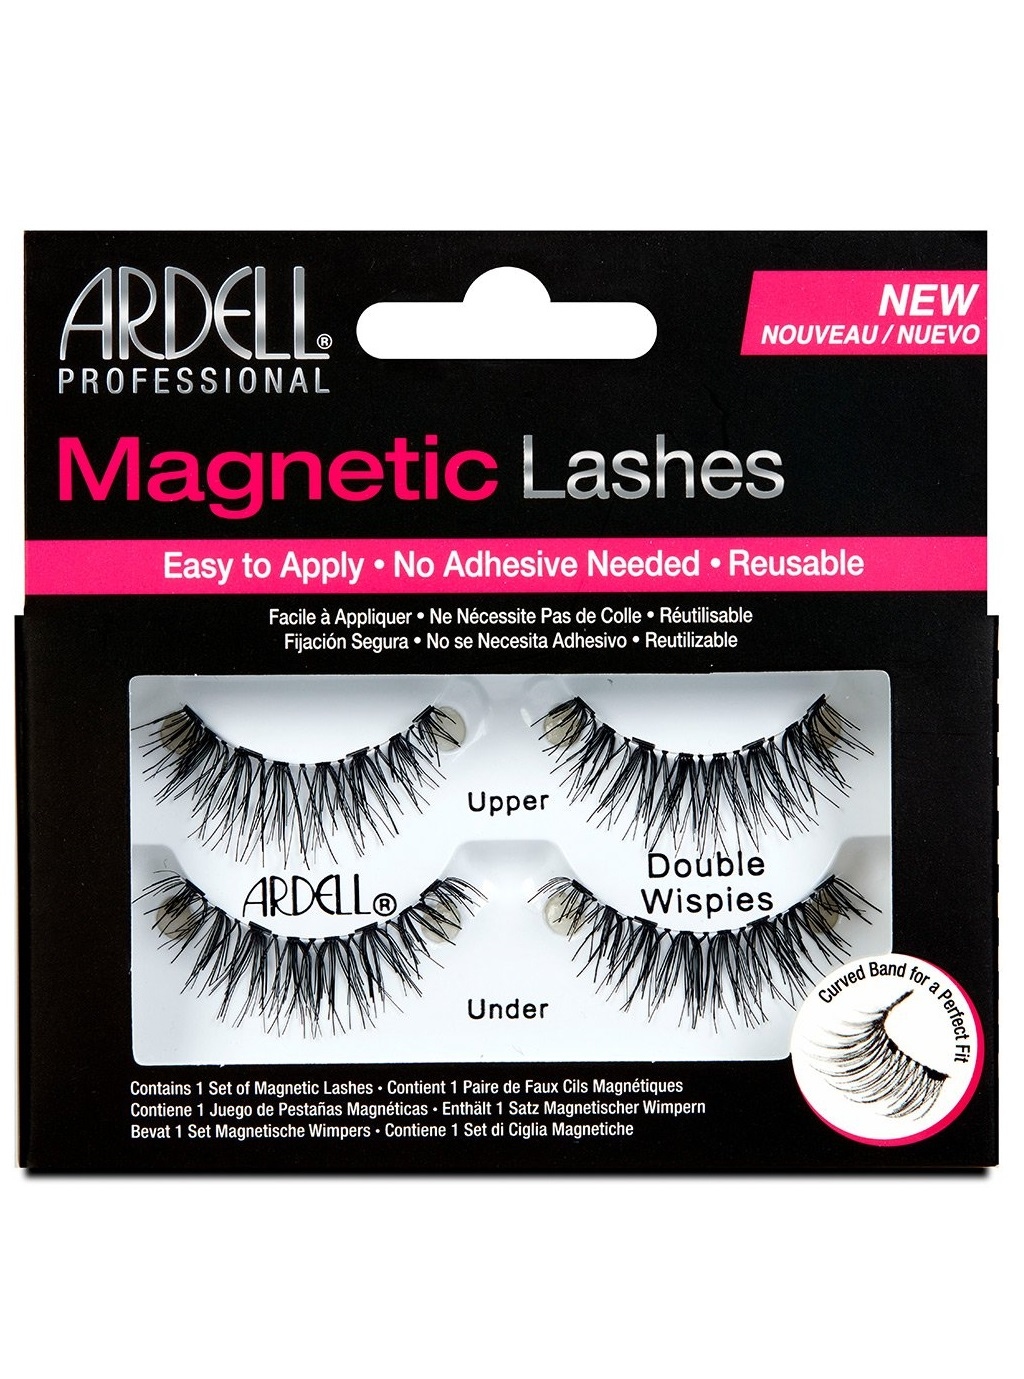 Magnetic Lashes - After hearing about magnetic lashes for the longest time you can now try them from your local drugstore at an affordable price. Ardell is one of my favorite lash brands and I love that they are dipping into this type of lash. Pictured here in the double wispies (my personal favorite).